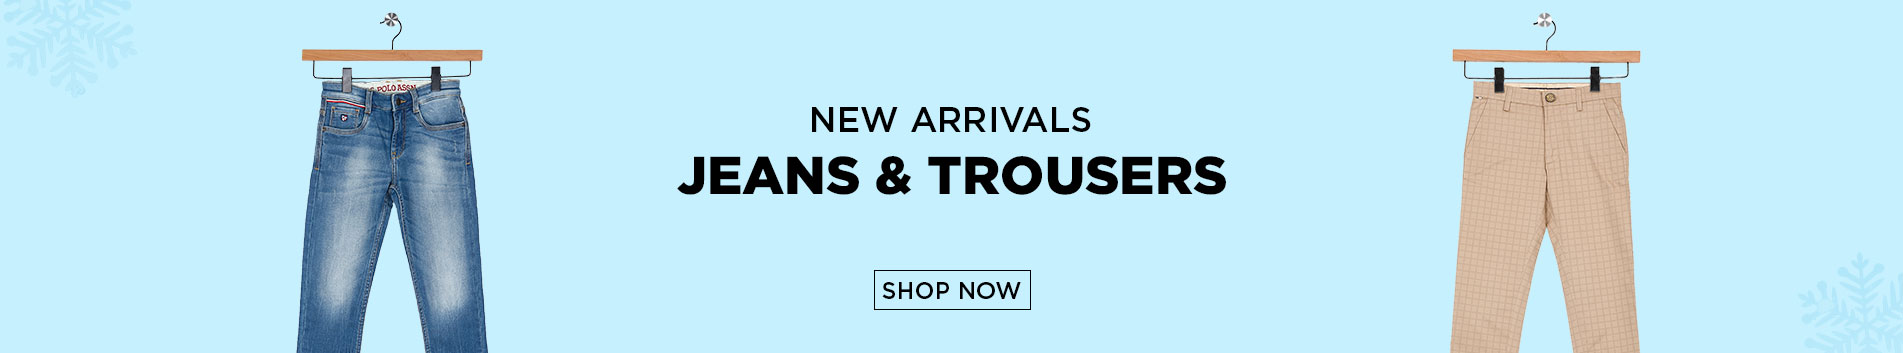 Boys Jeans & Trousers